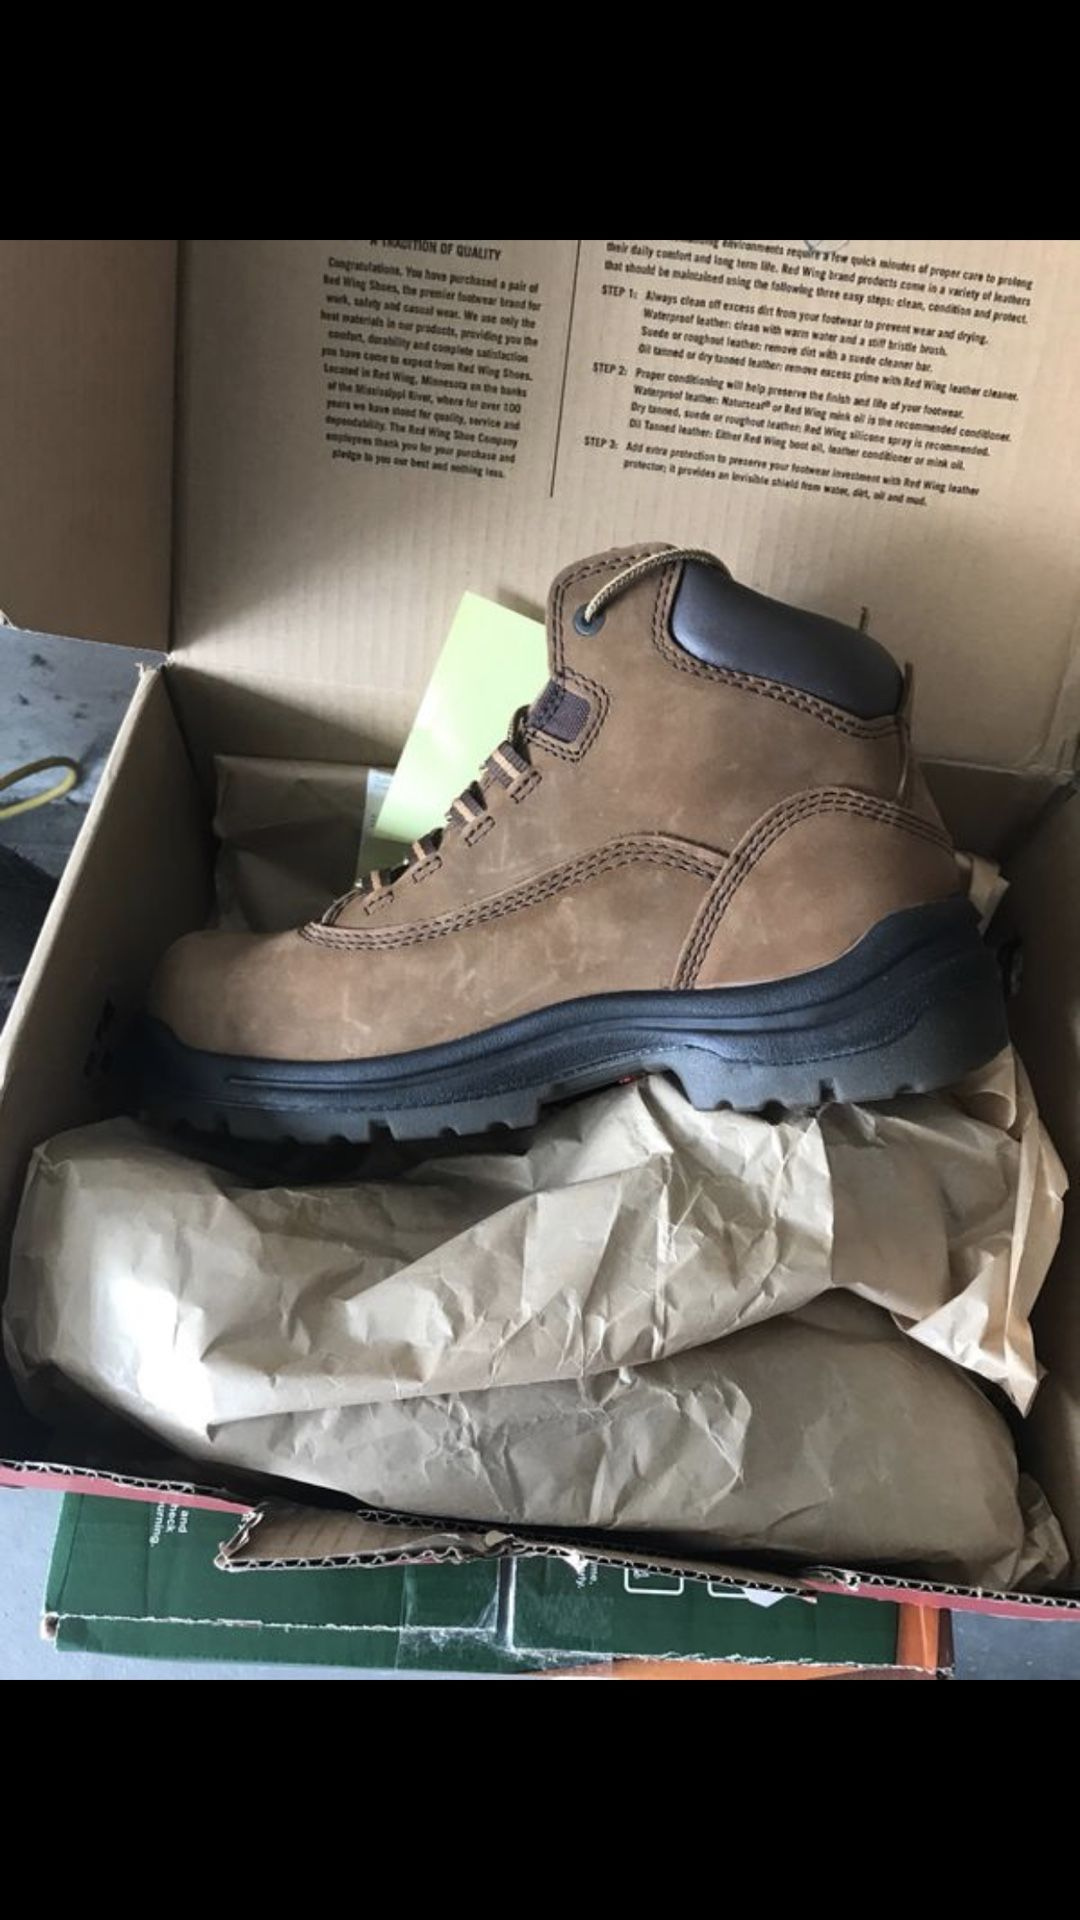 Size 10 Irish setter boots from red wing